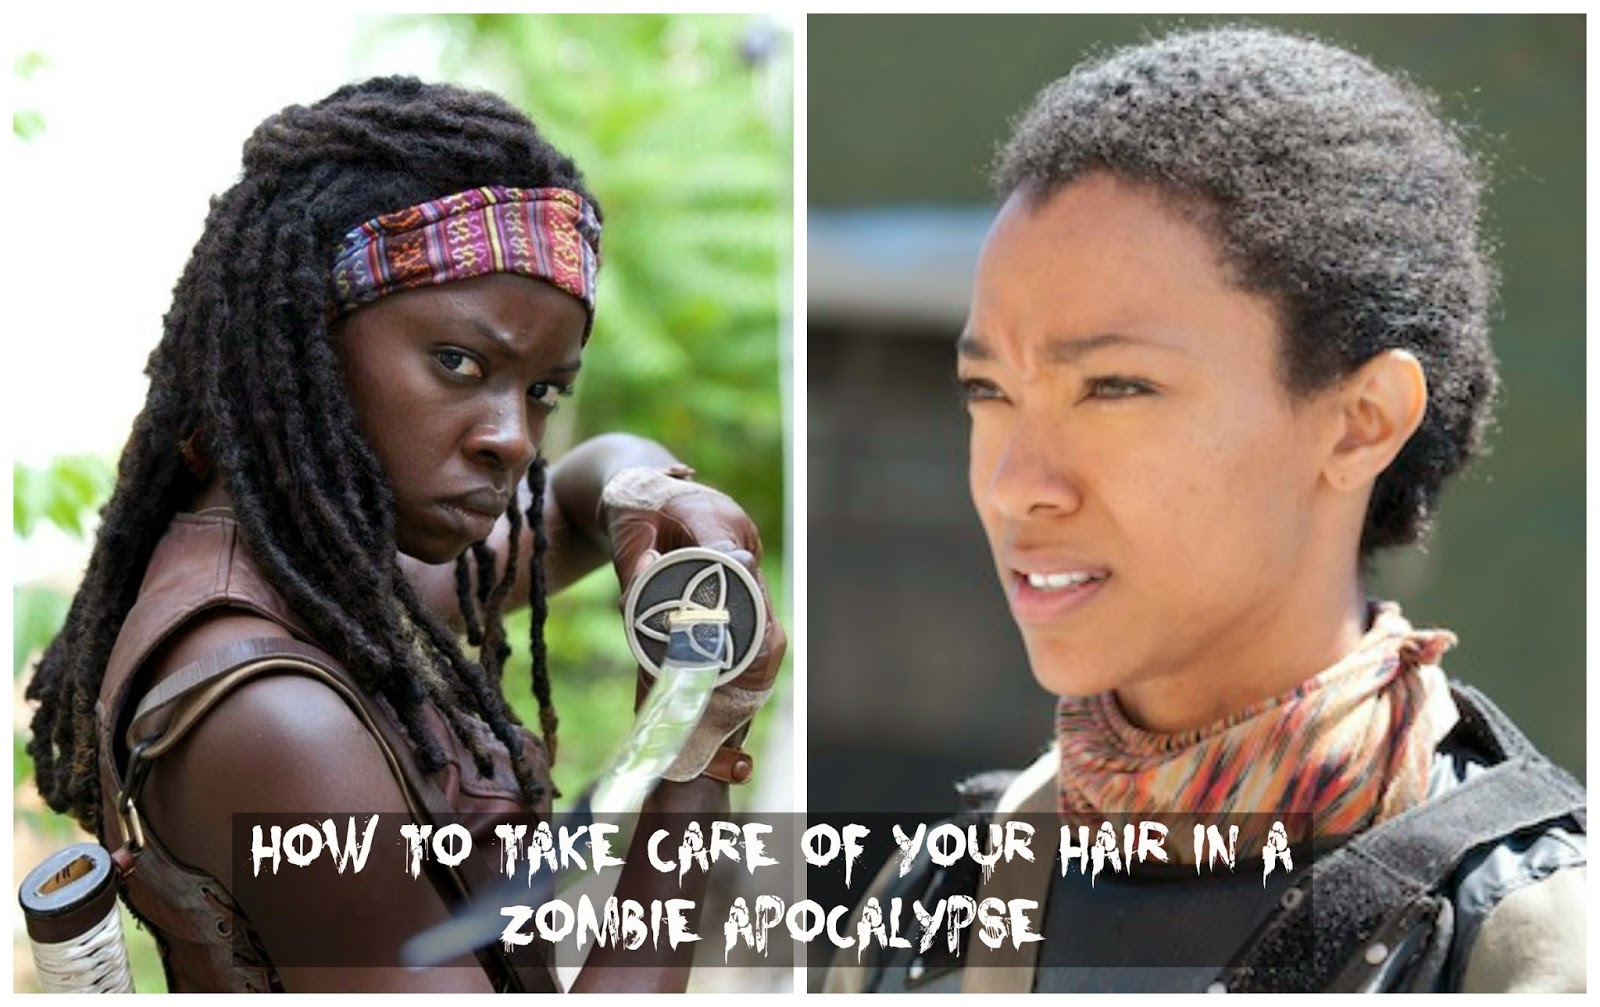 How To Take Care Of Your Hair In A Zombie Apocalypse